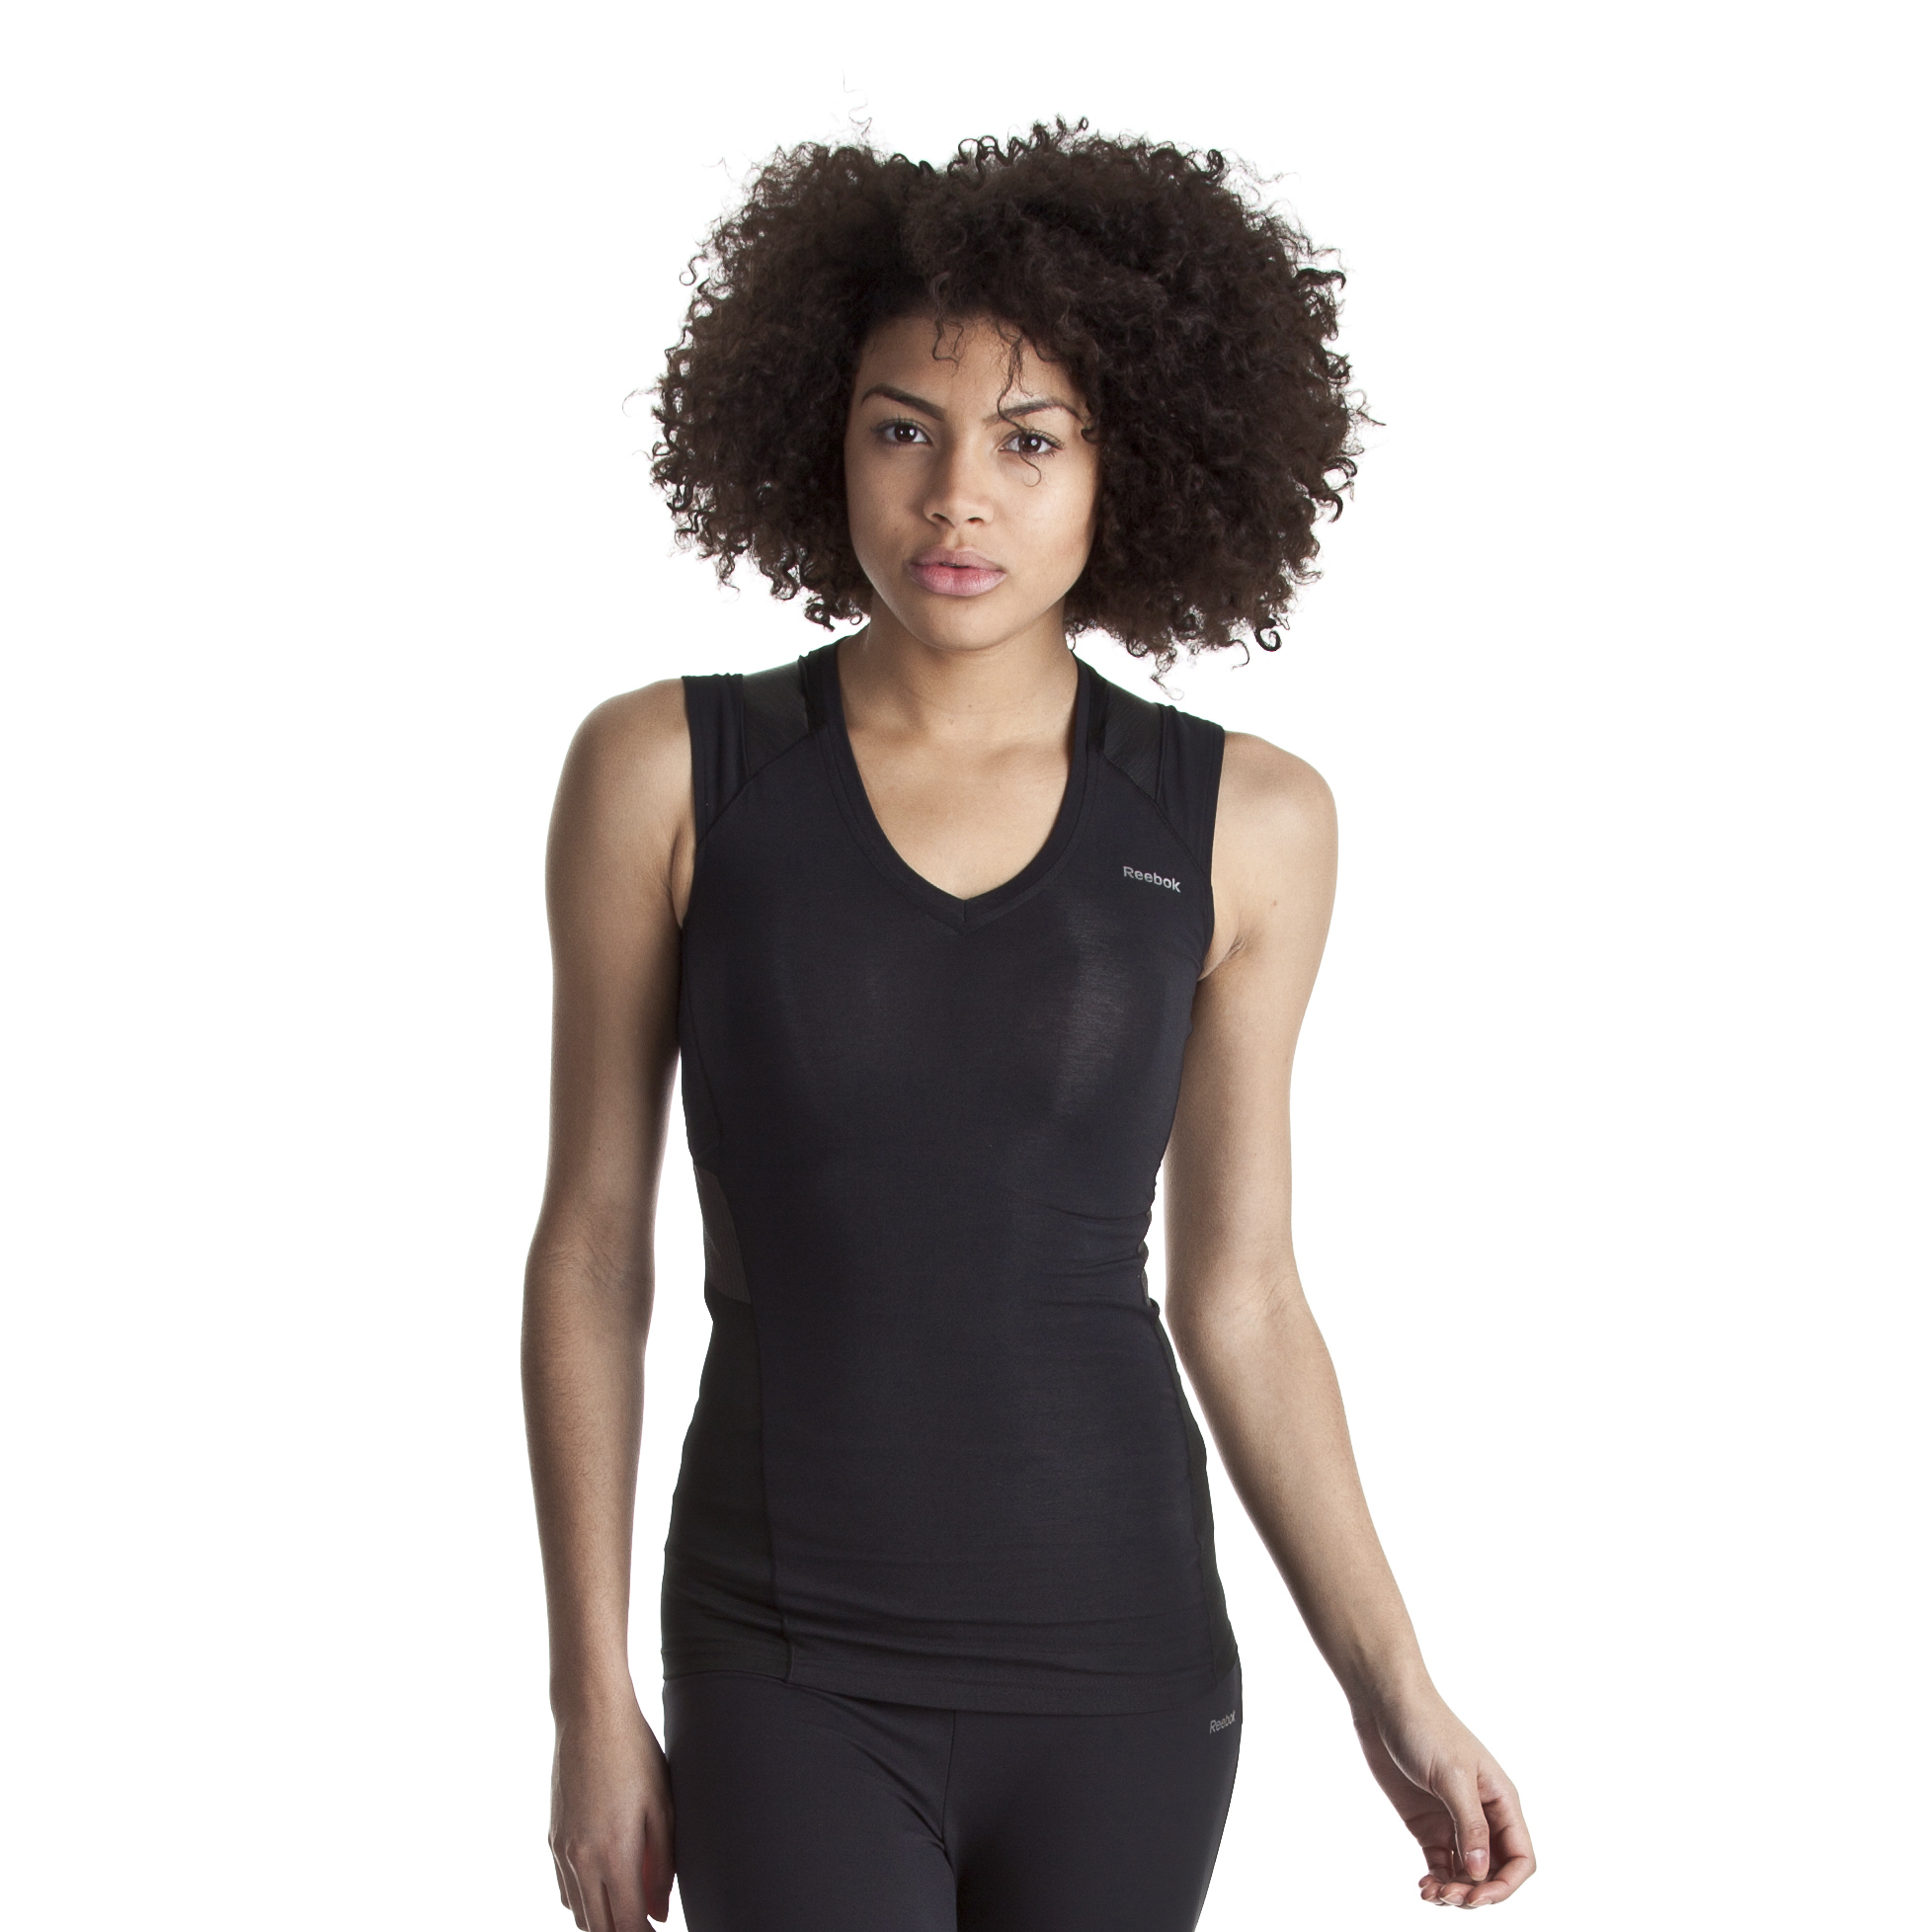 Reebok EasyTone Cotton V-Neck Tank - Black - Women